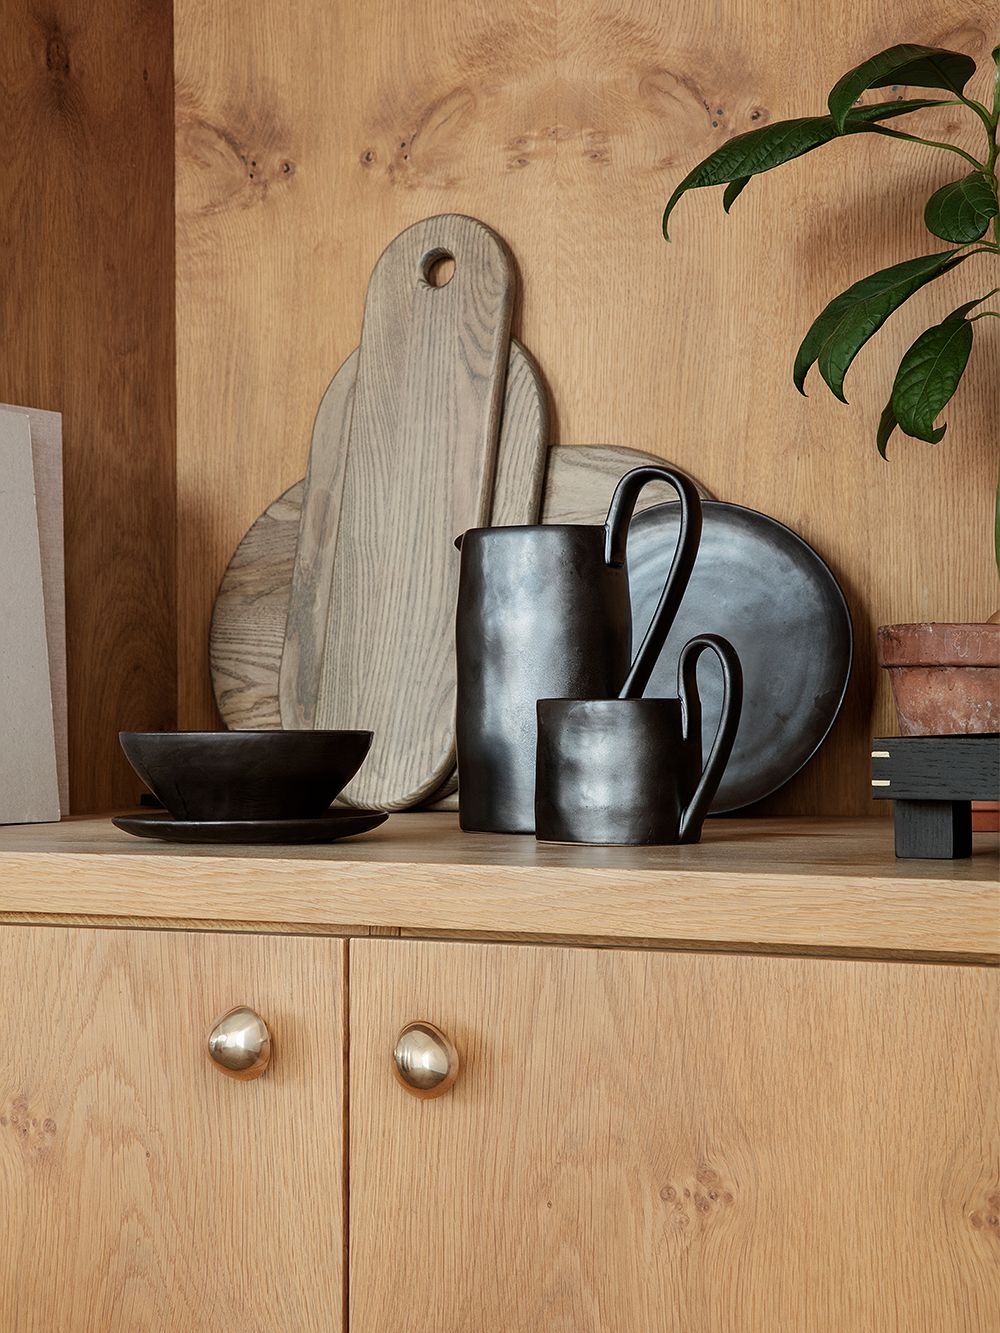 Ferm Living's Flow tableware placed on a sideboard.